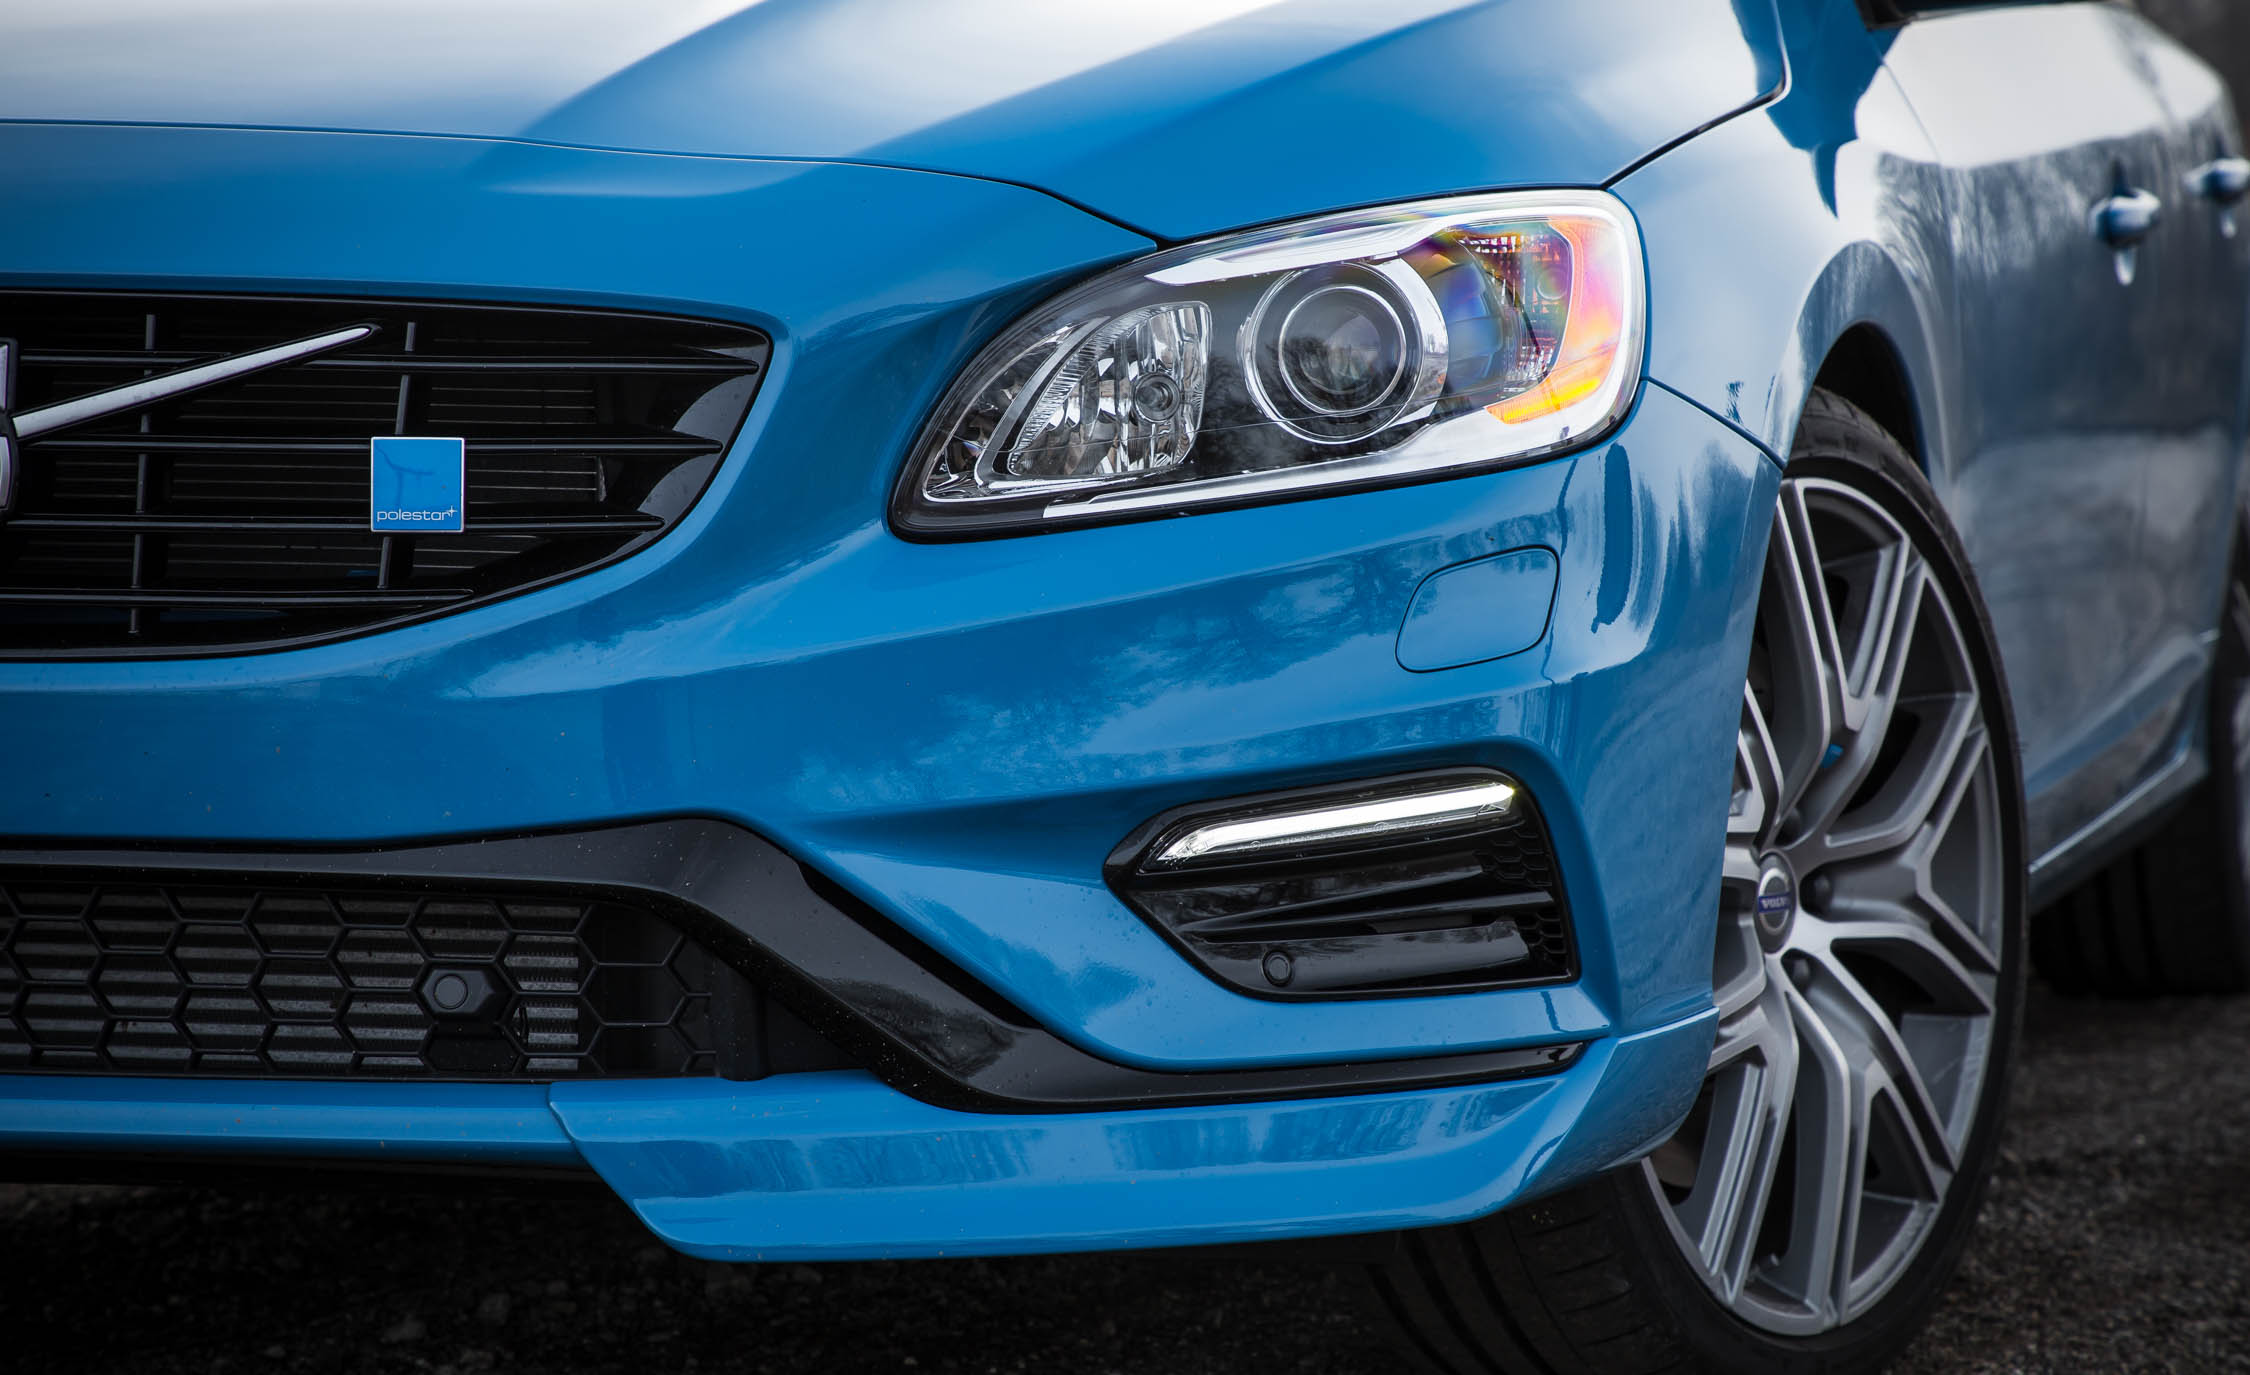 2017 Volvo V60 Polestar Exterior View Headlight And Bumper (View 17 of 53)